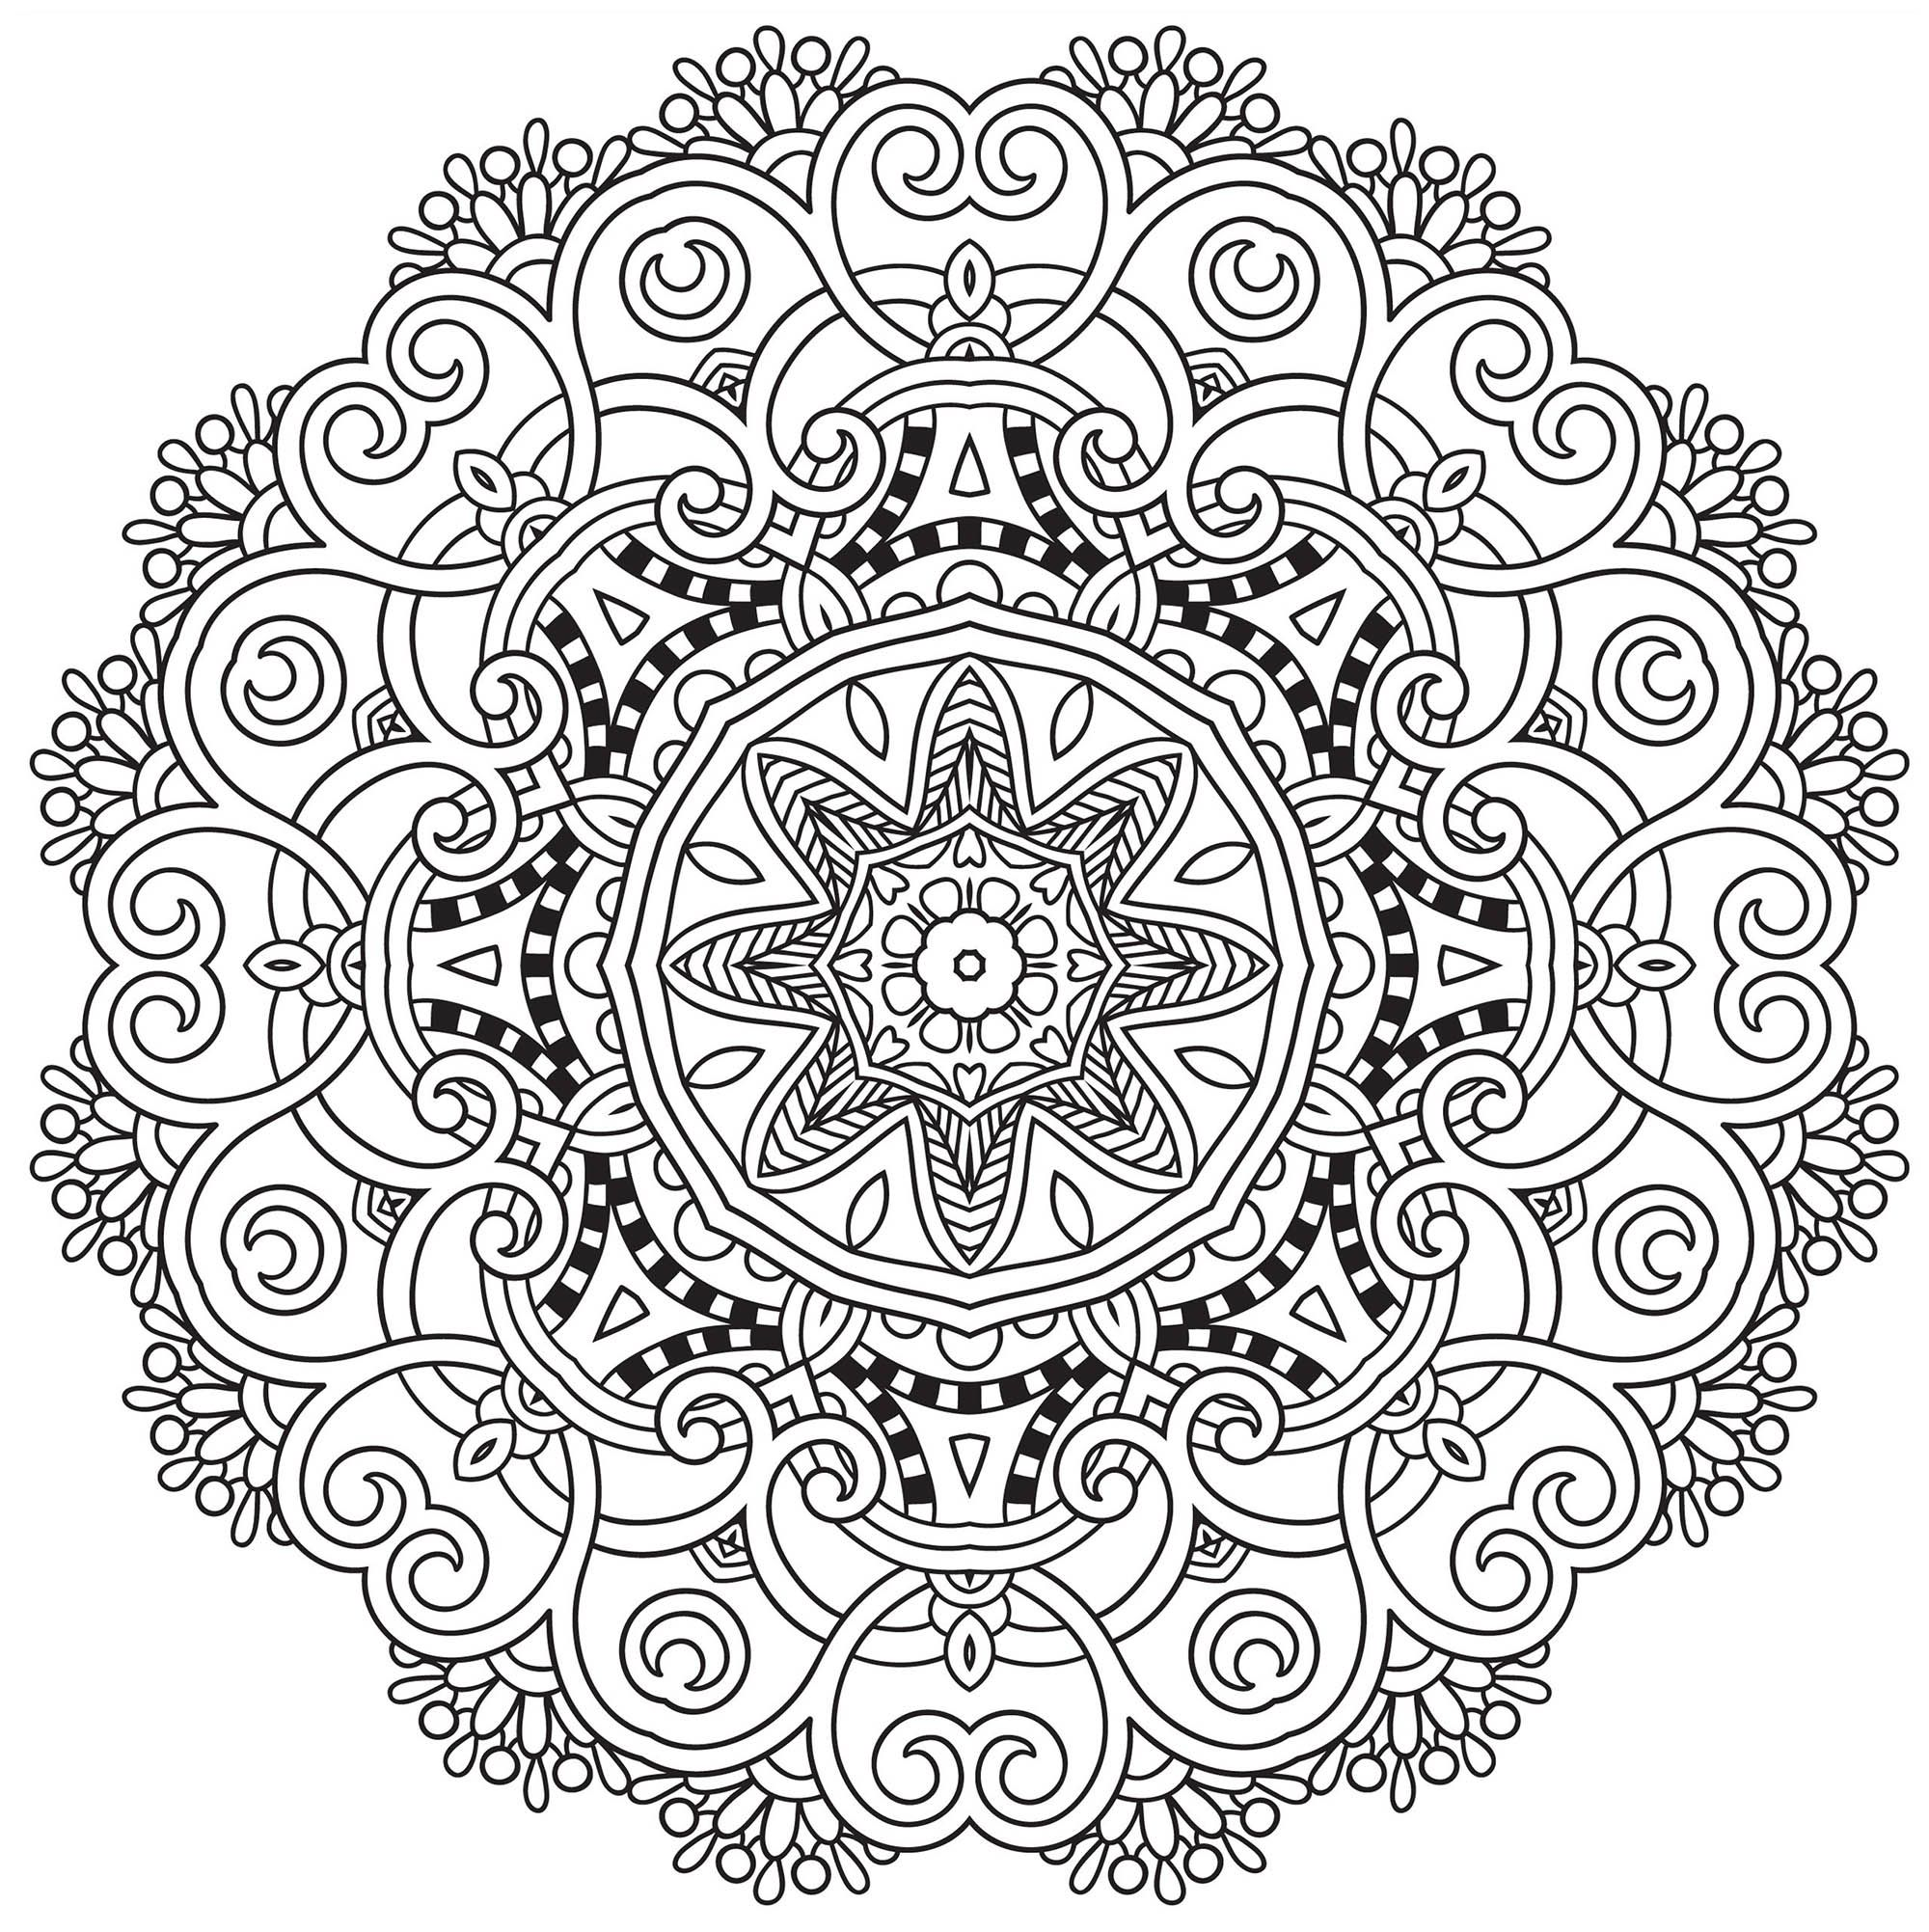 Here Are Difficult Mandalas Coloring Pages For Adults To Print For Free Mandala Is A Sanskrit Word Which Designs Coloring Books Mandala Coloring Mandala Book